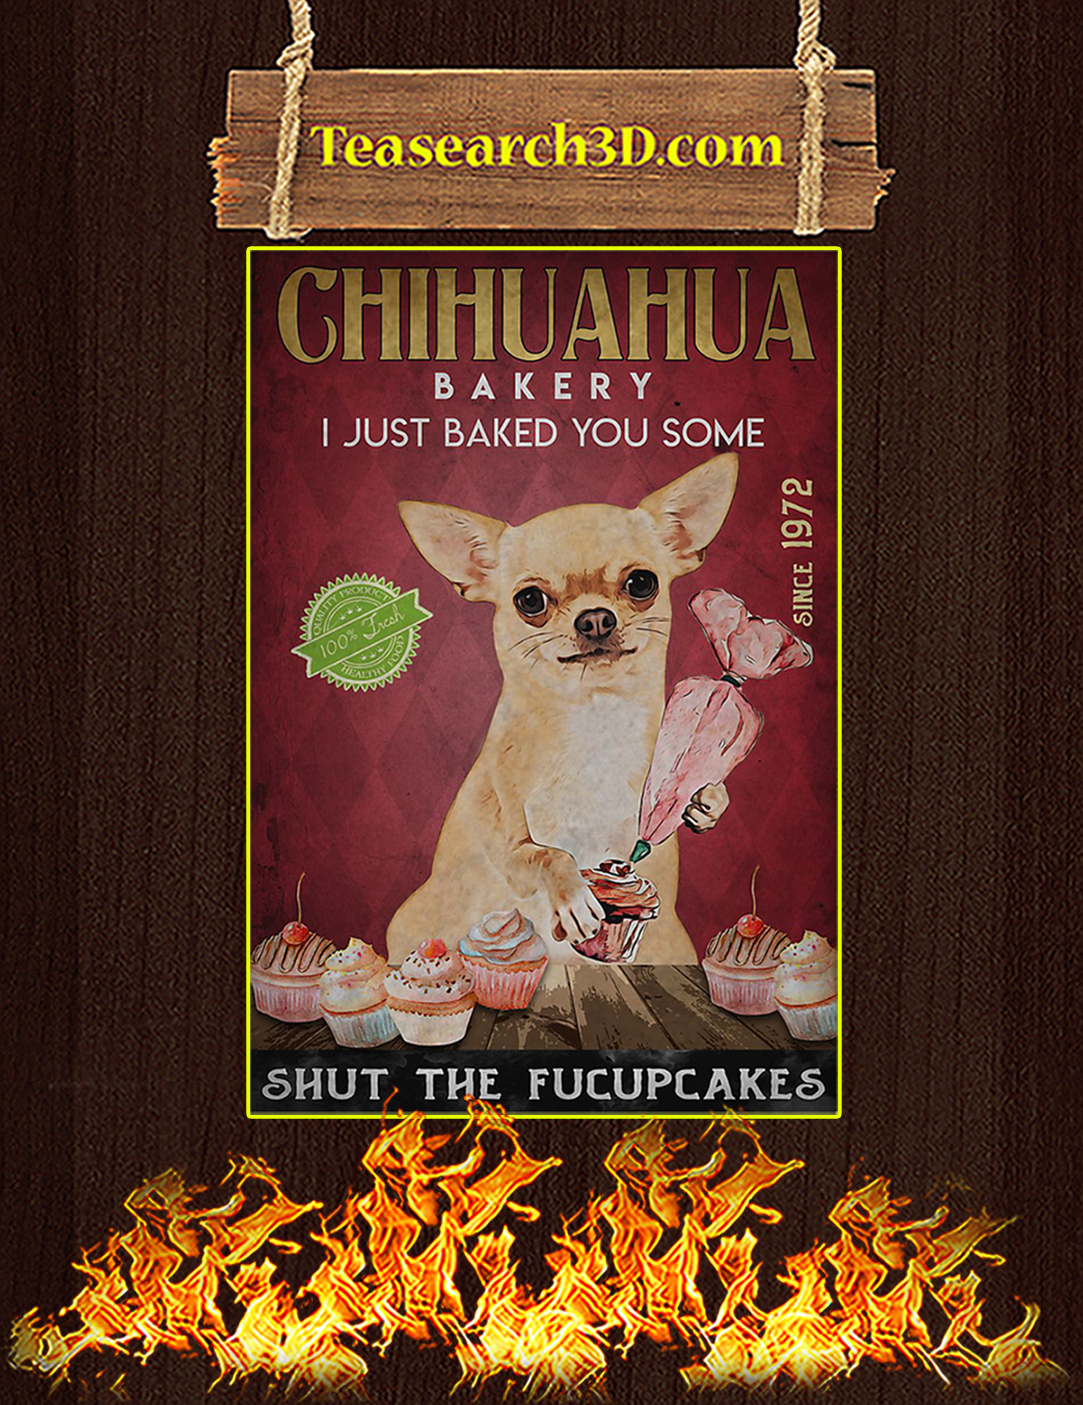 Chihuahua bakery I just baked you some poster A2